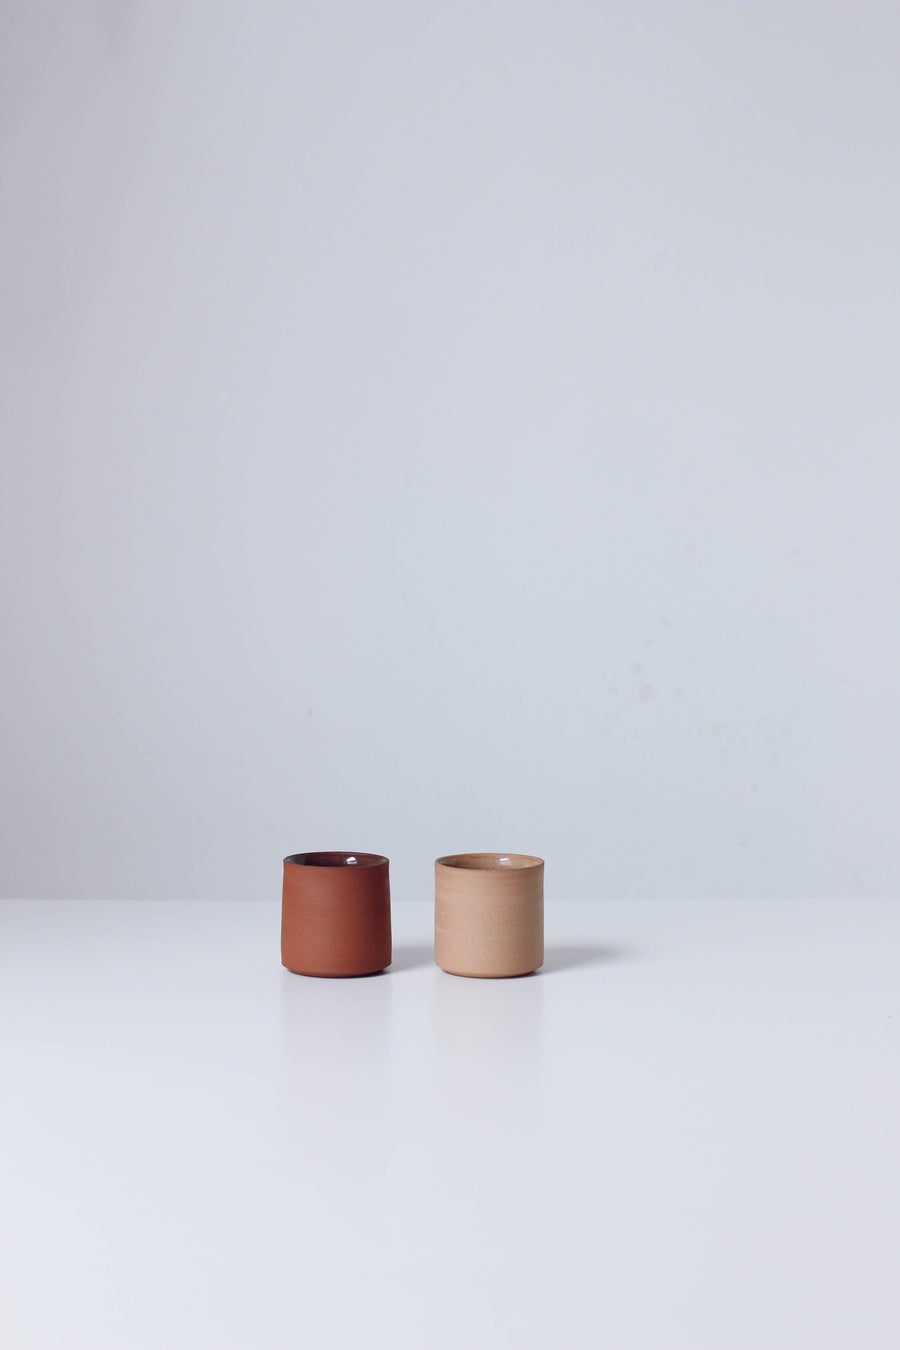 Image of Pair of mezcal / espresso cups #2